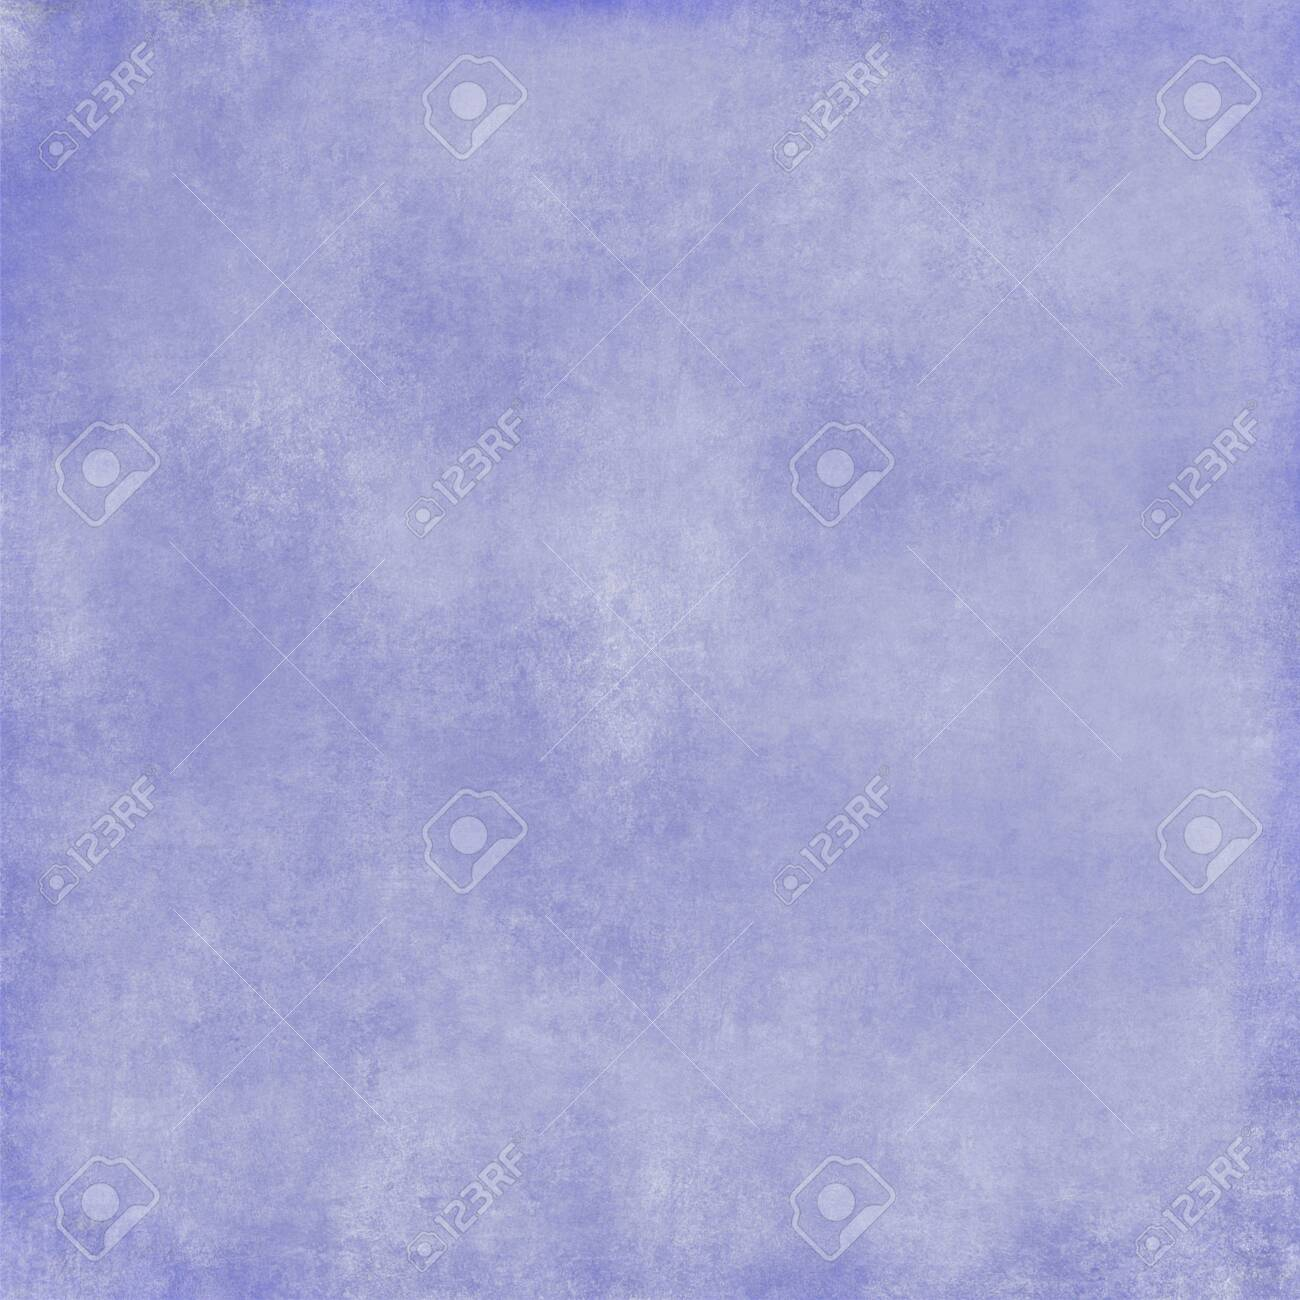 grunge abstract background - 140316267